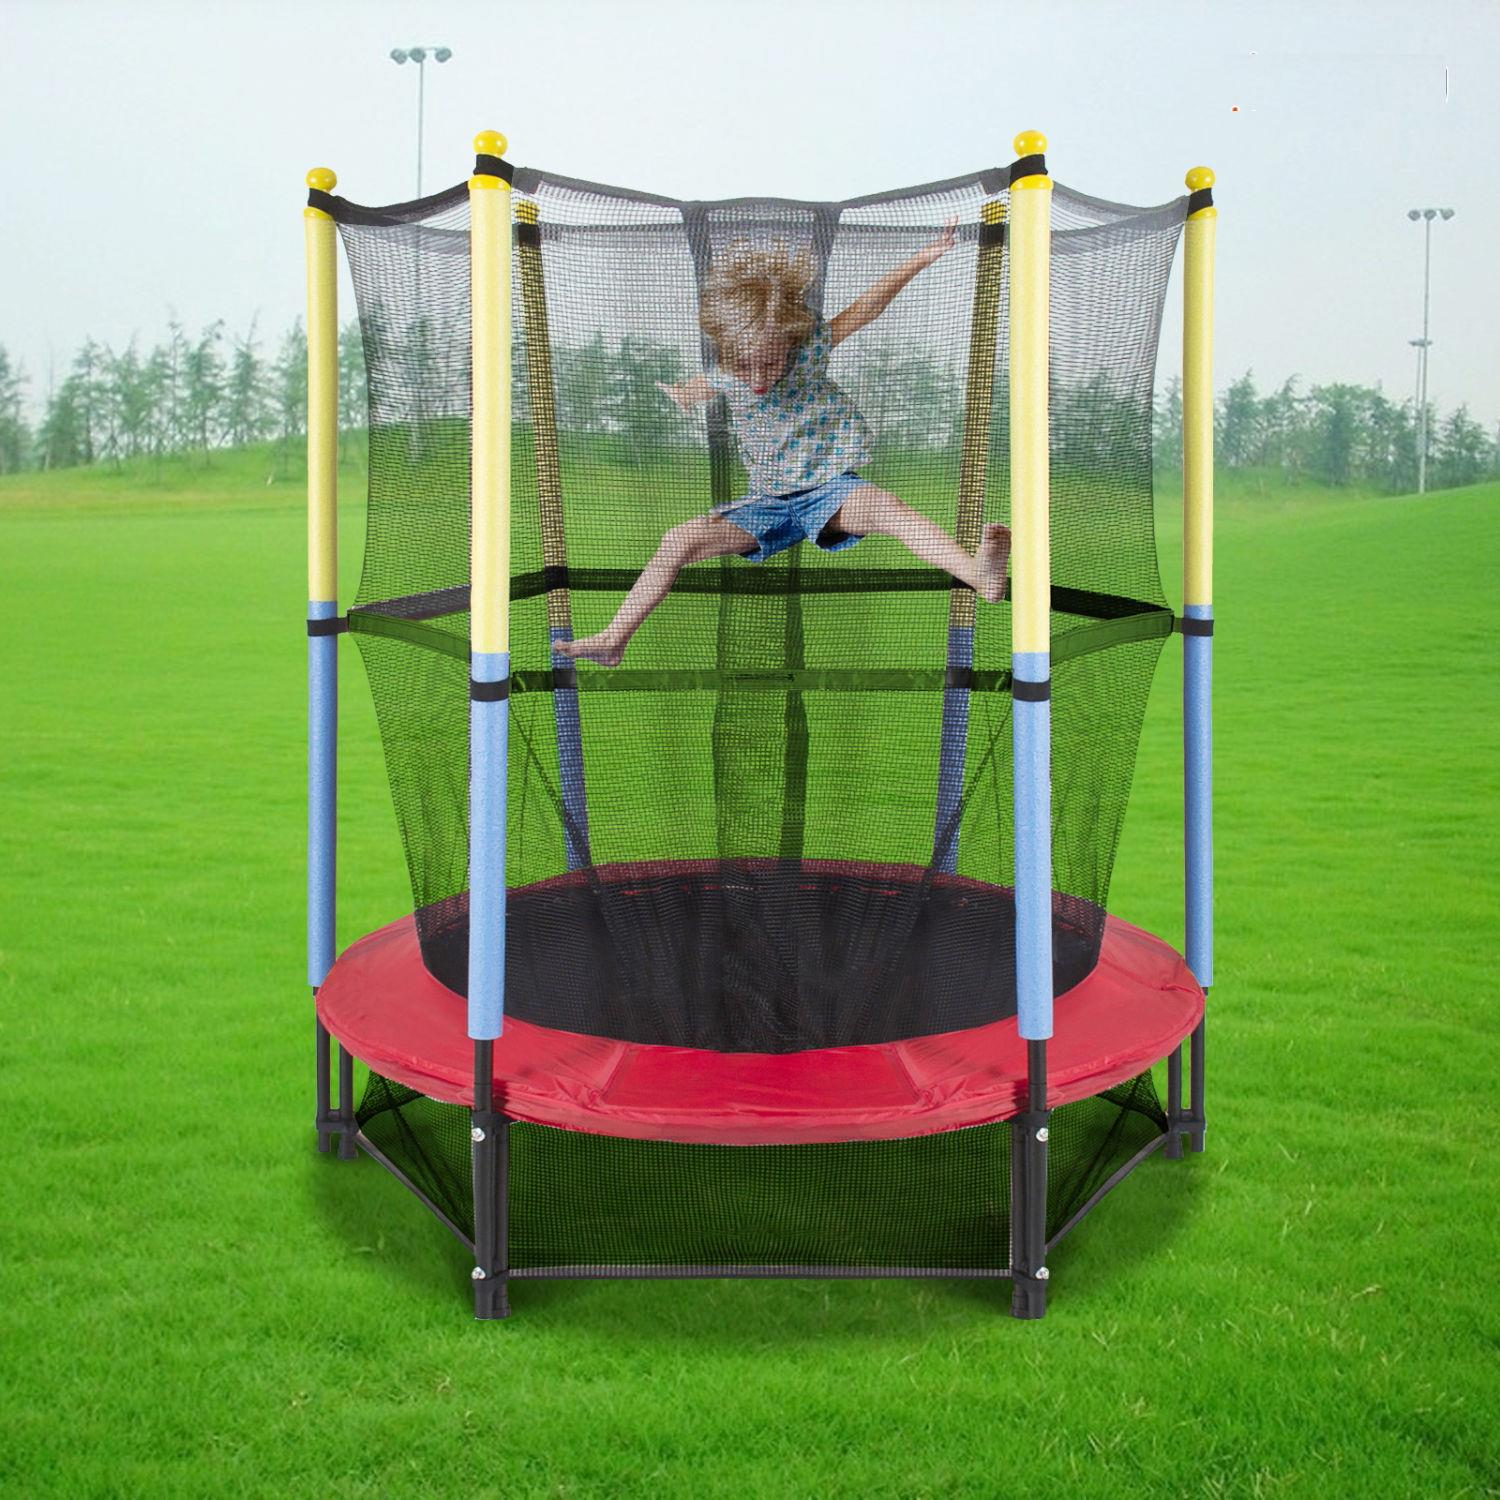 "Ktaxon 55"" Round Kids Mini Trampoline Combo, with Safety Enclosure Net Pad, for Rebound Jumping Outdoor Playground Exercise"